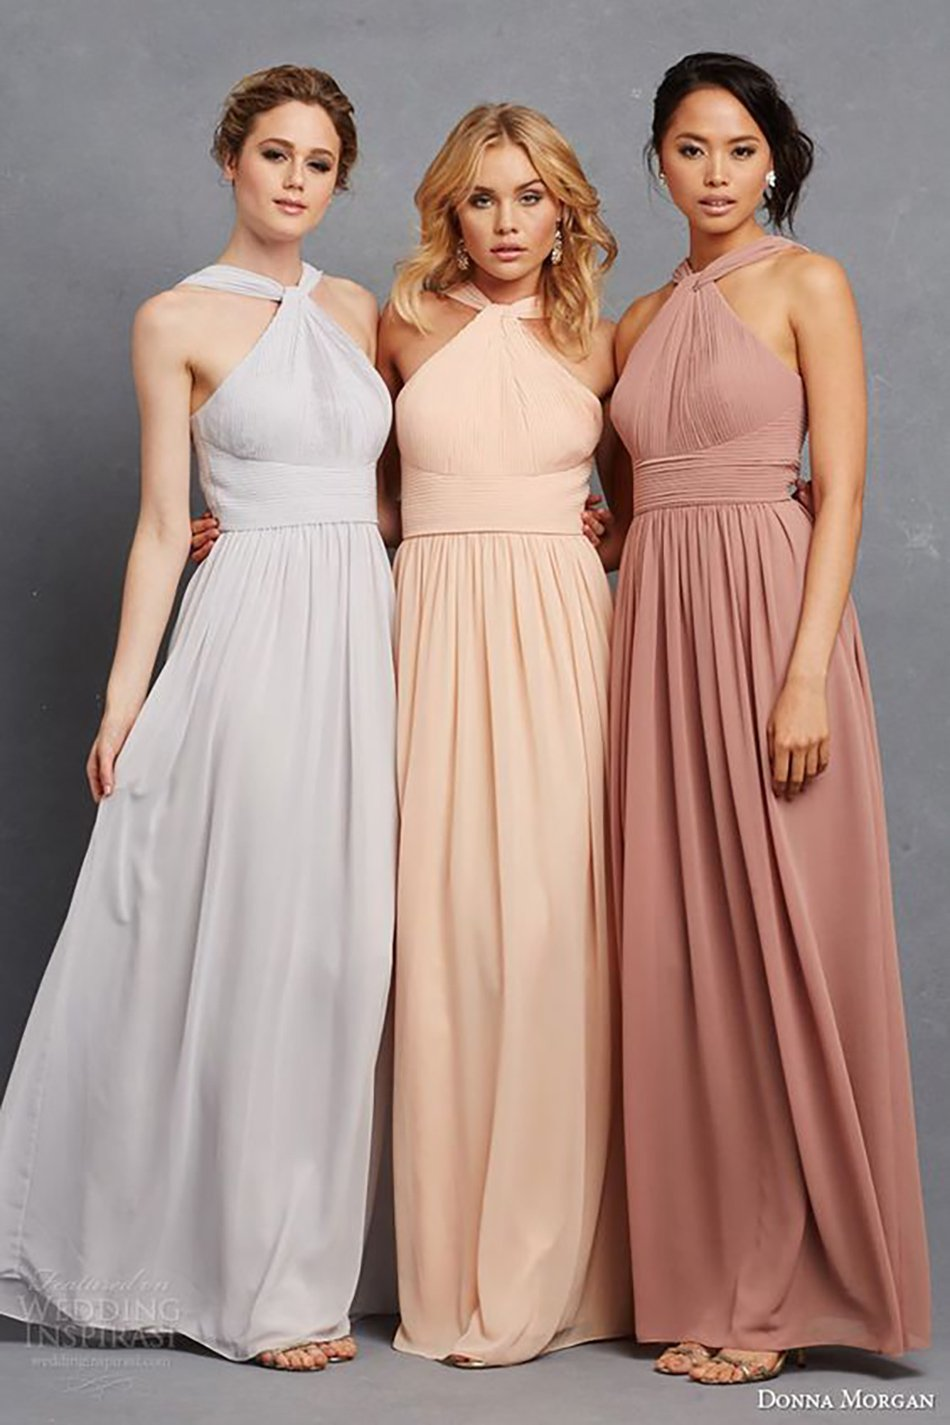 Wedding ideas by colour: Peach bridesmaids dresses - Different colours | CHWV